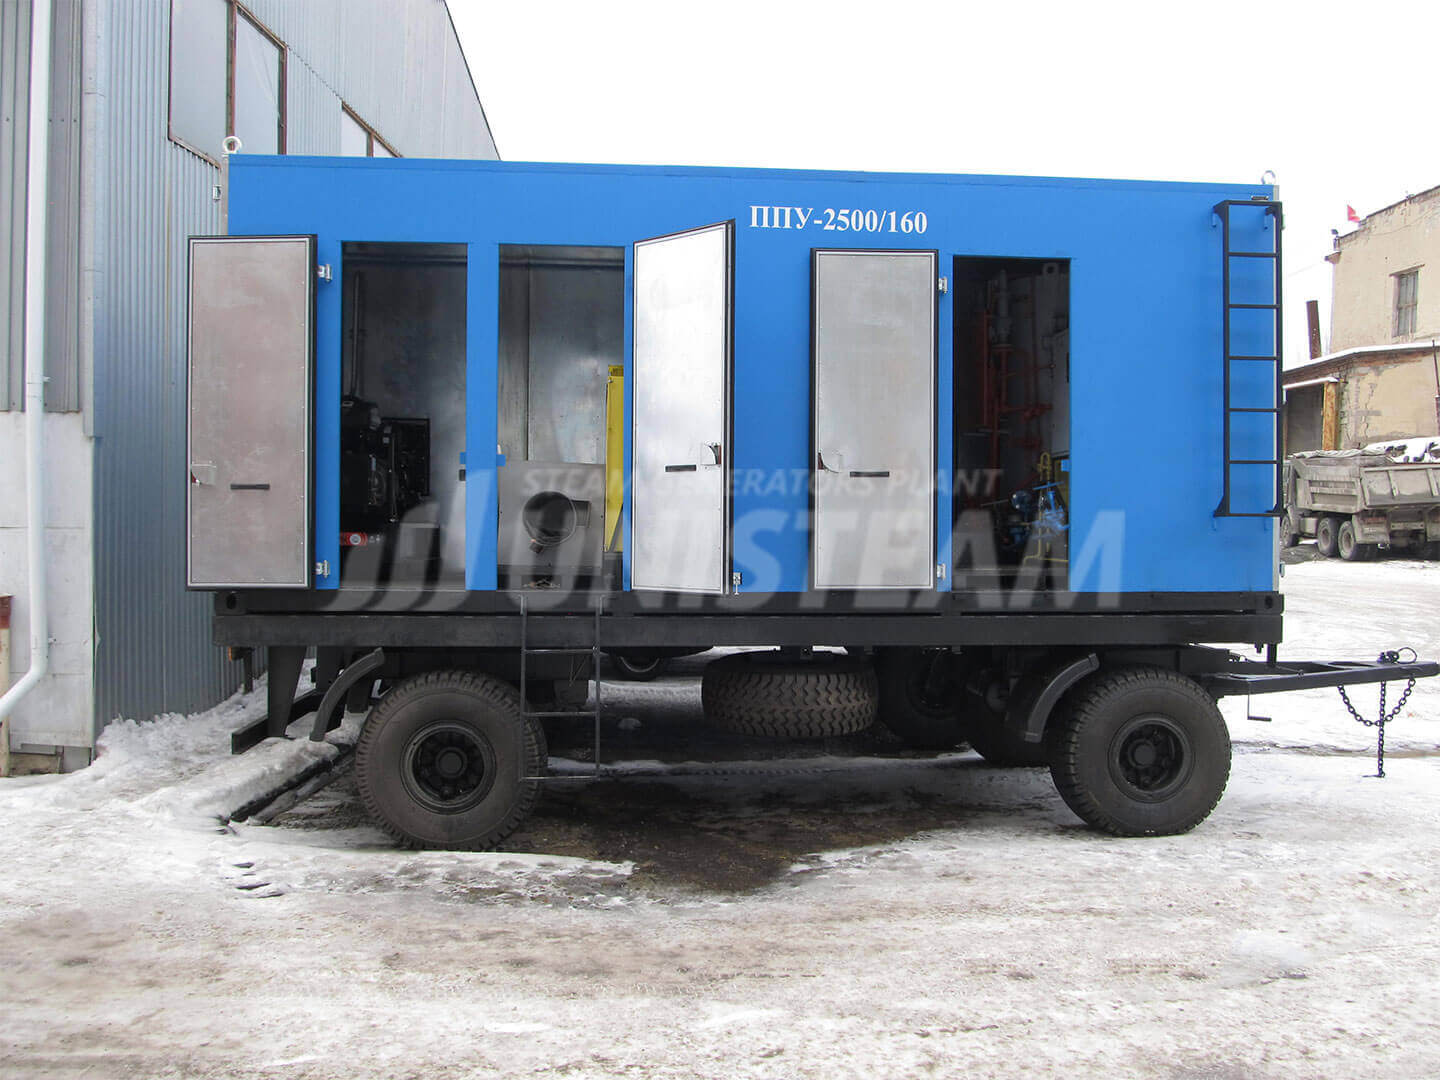 UNISTEAM-MP 2500/160 Portable Industrial steam unit for oilfield, railroad, roadbuilding industries